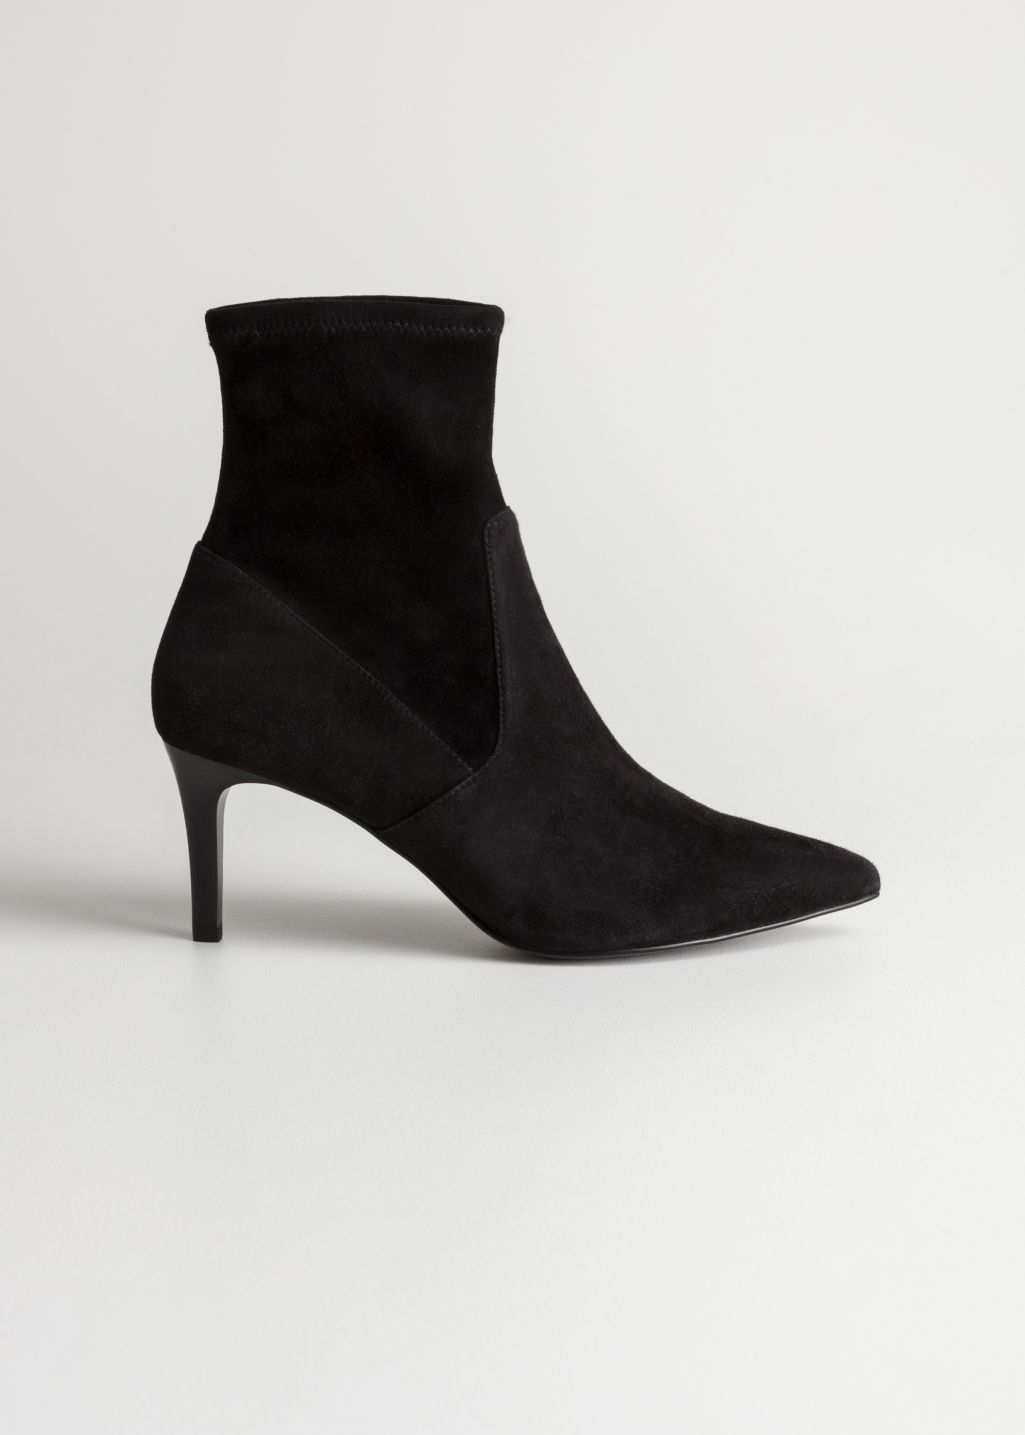 Front Image Of Stories Stretch Suede Ankle Boots In Black Kitten Heel Ankle Boots Boots Socks And Heels